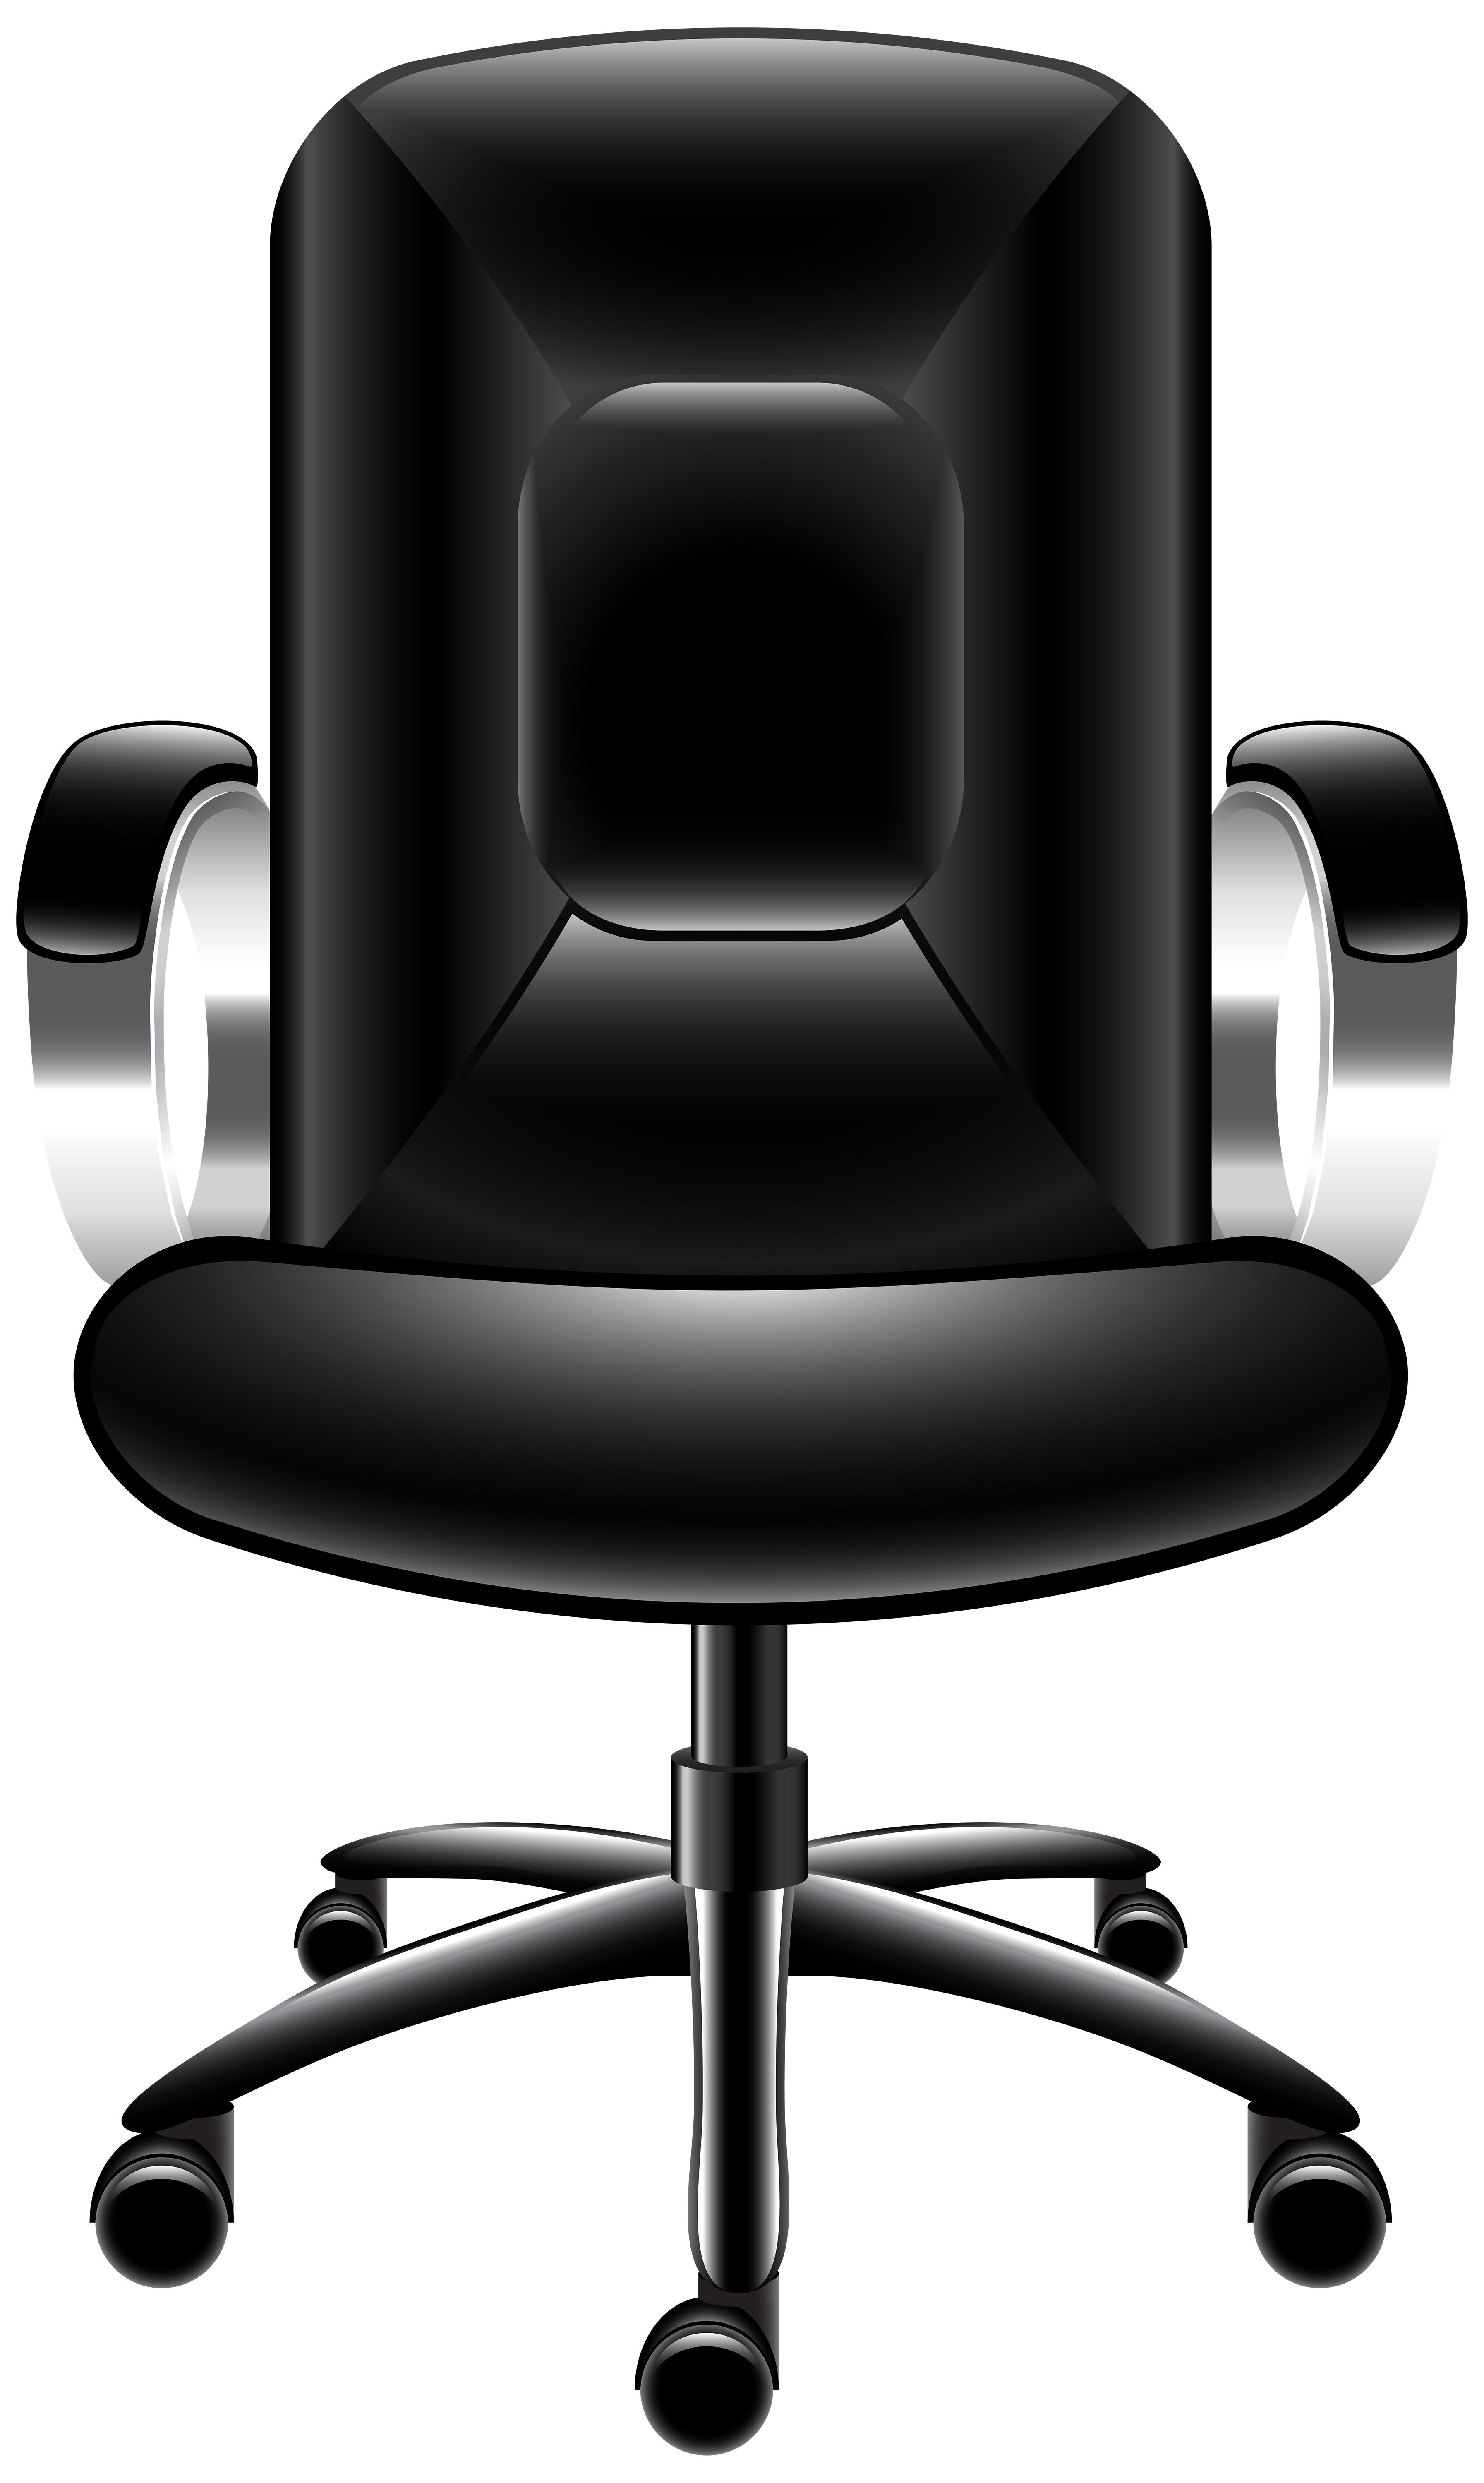 Office Chair Top View Clipart.